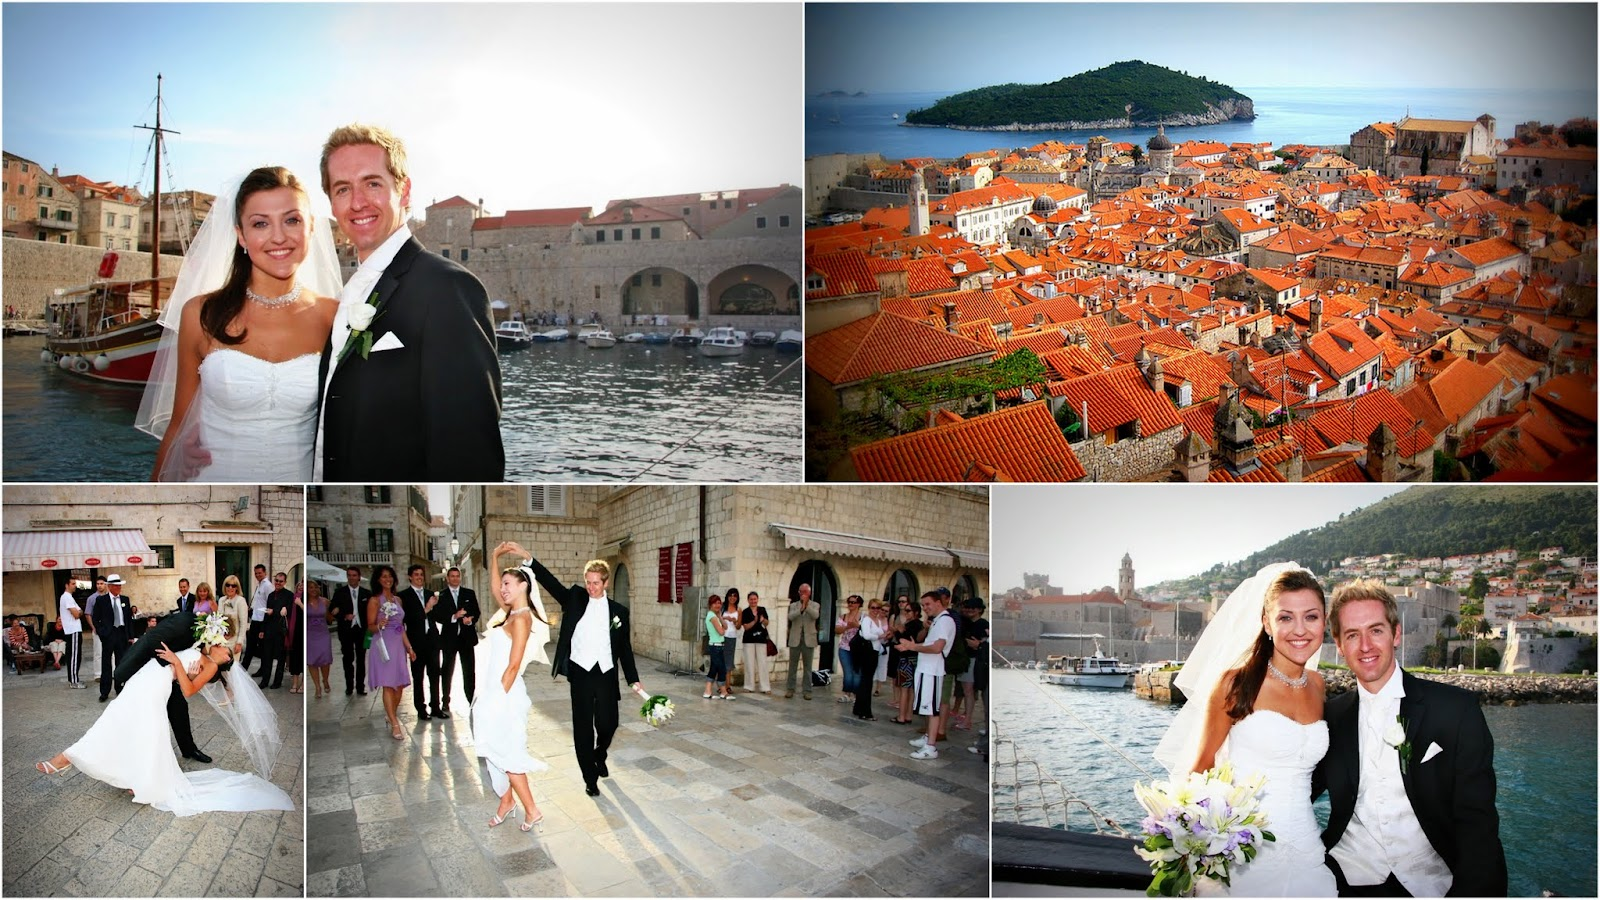 Island wedding Dubrovnik, Croatia